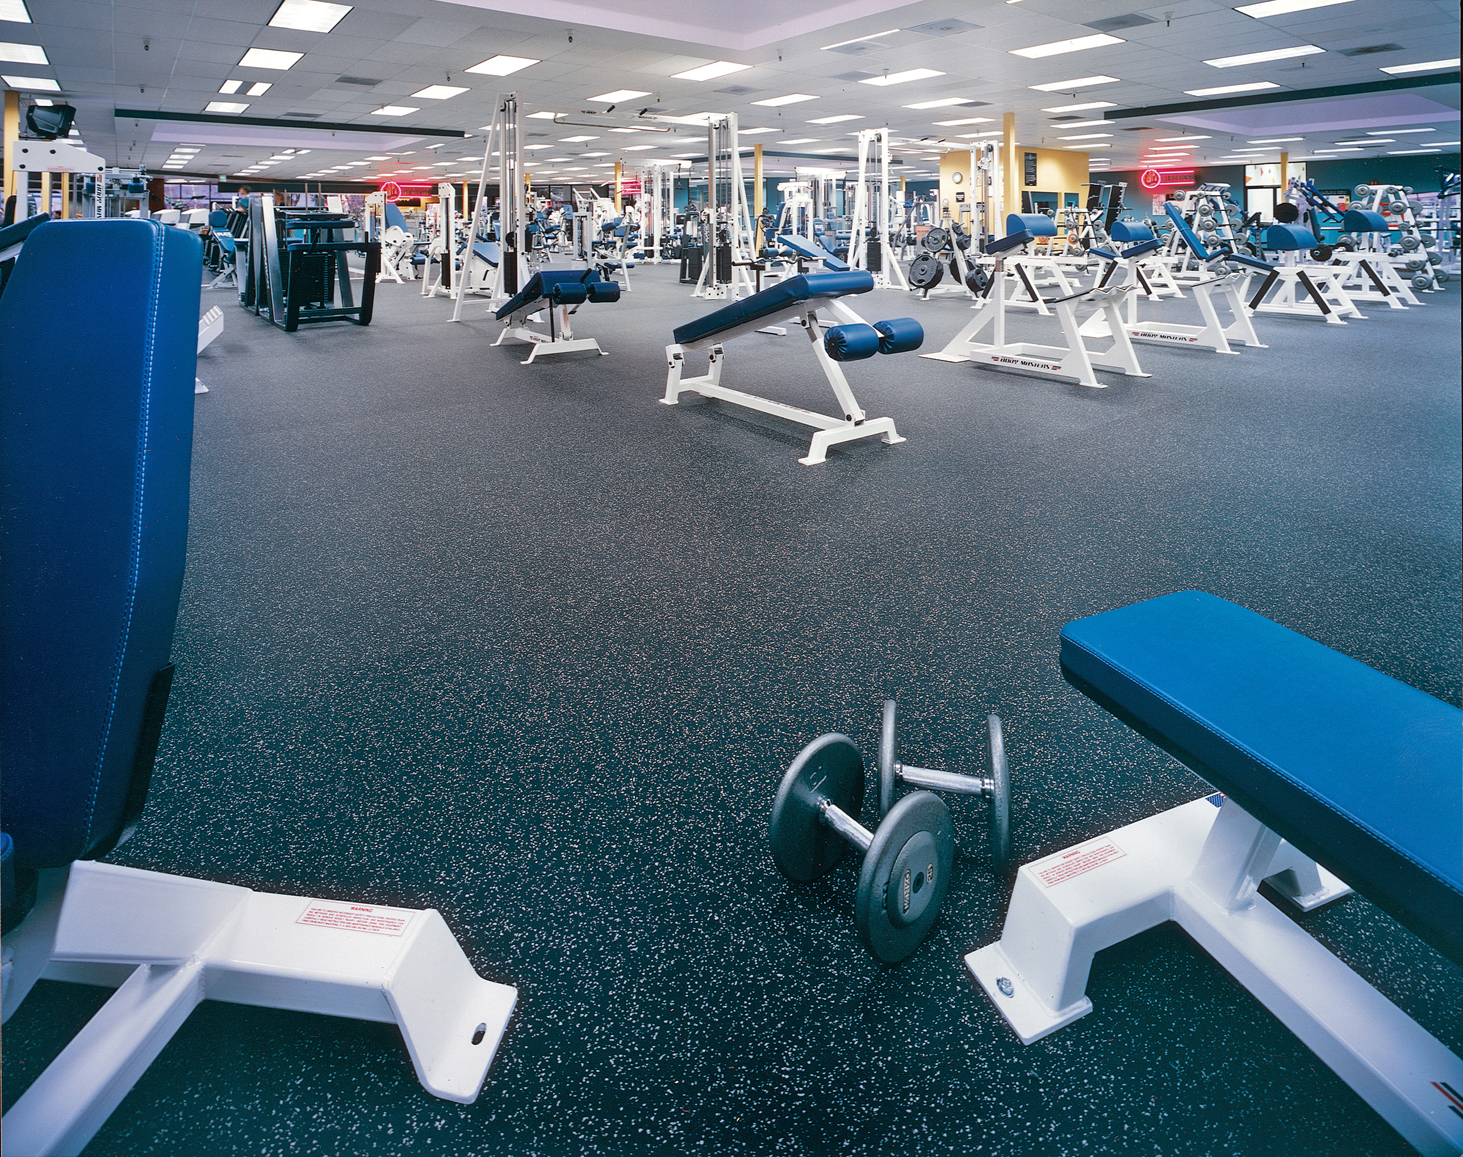 Weight room flooring rubber rolls modular tiles & health club floors